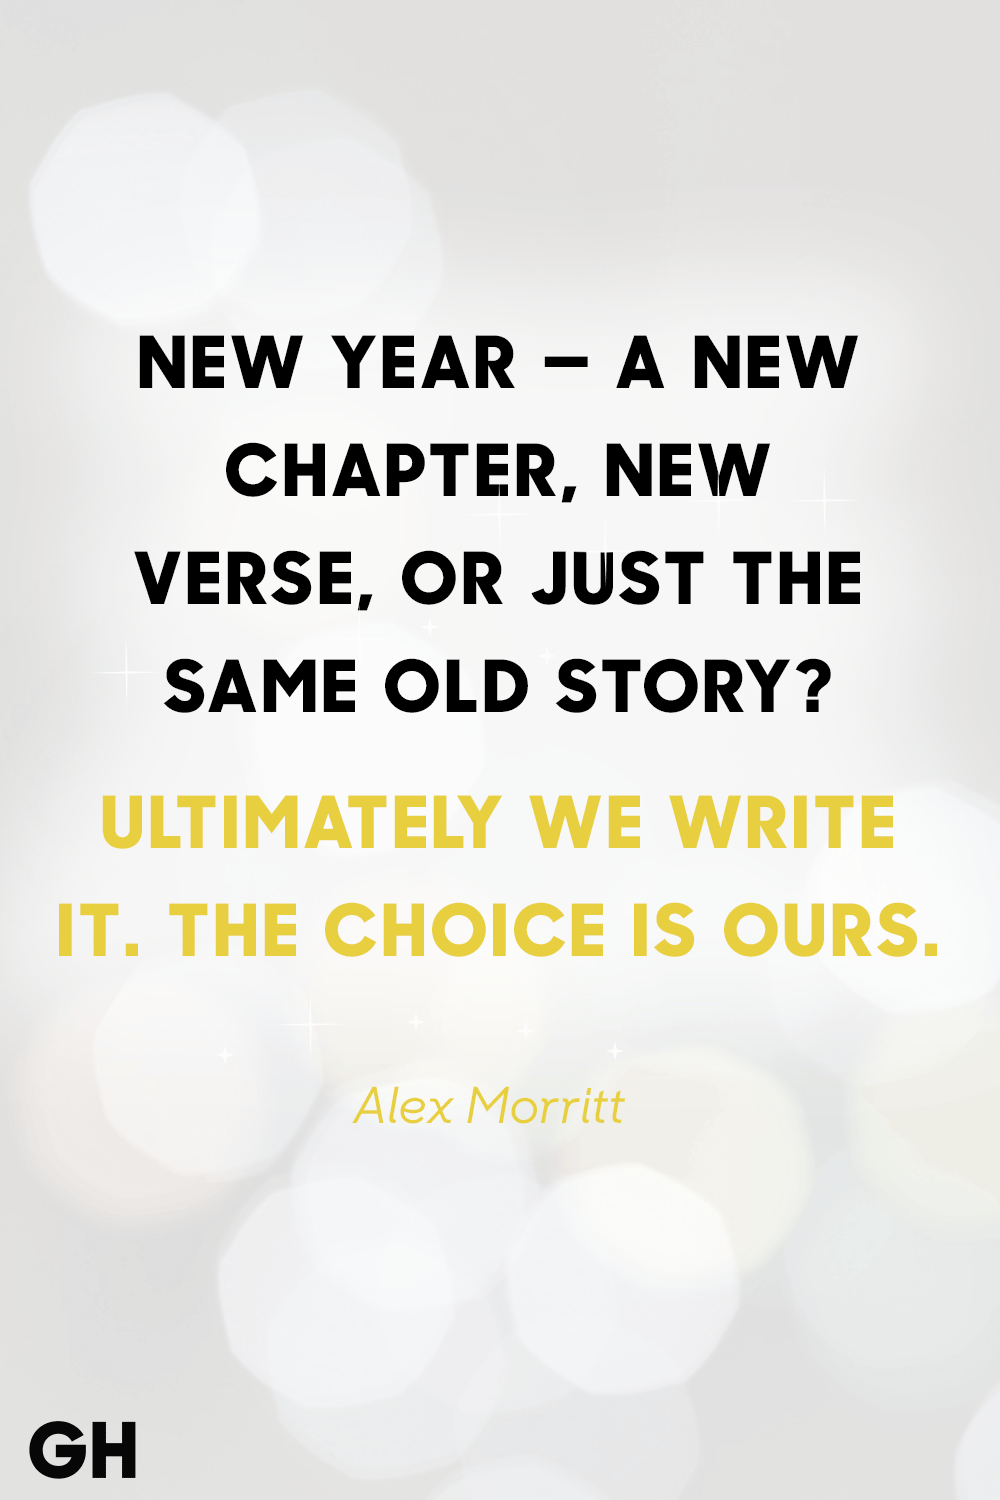 New Years Eve Quotes 36 Best New Year's Eve Quotes   Inspirational Sayings for the New Year New Years Eve Quotes